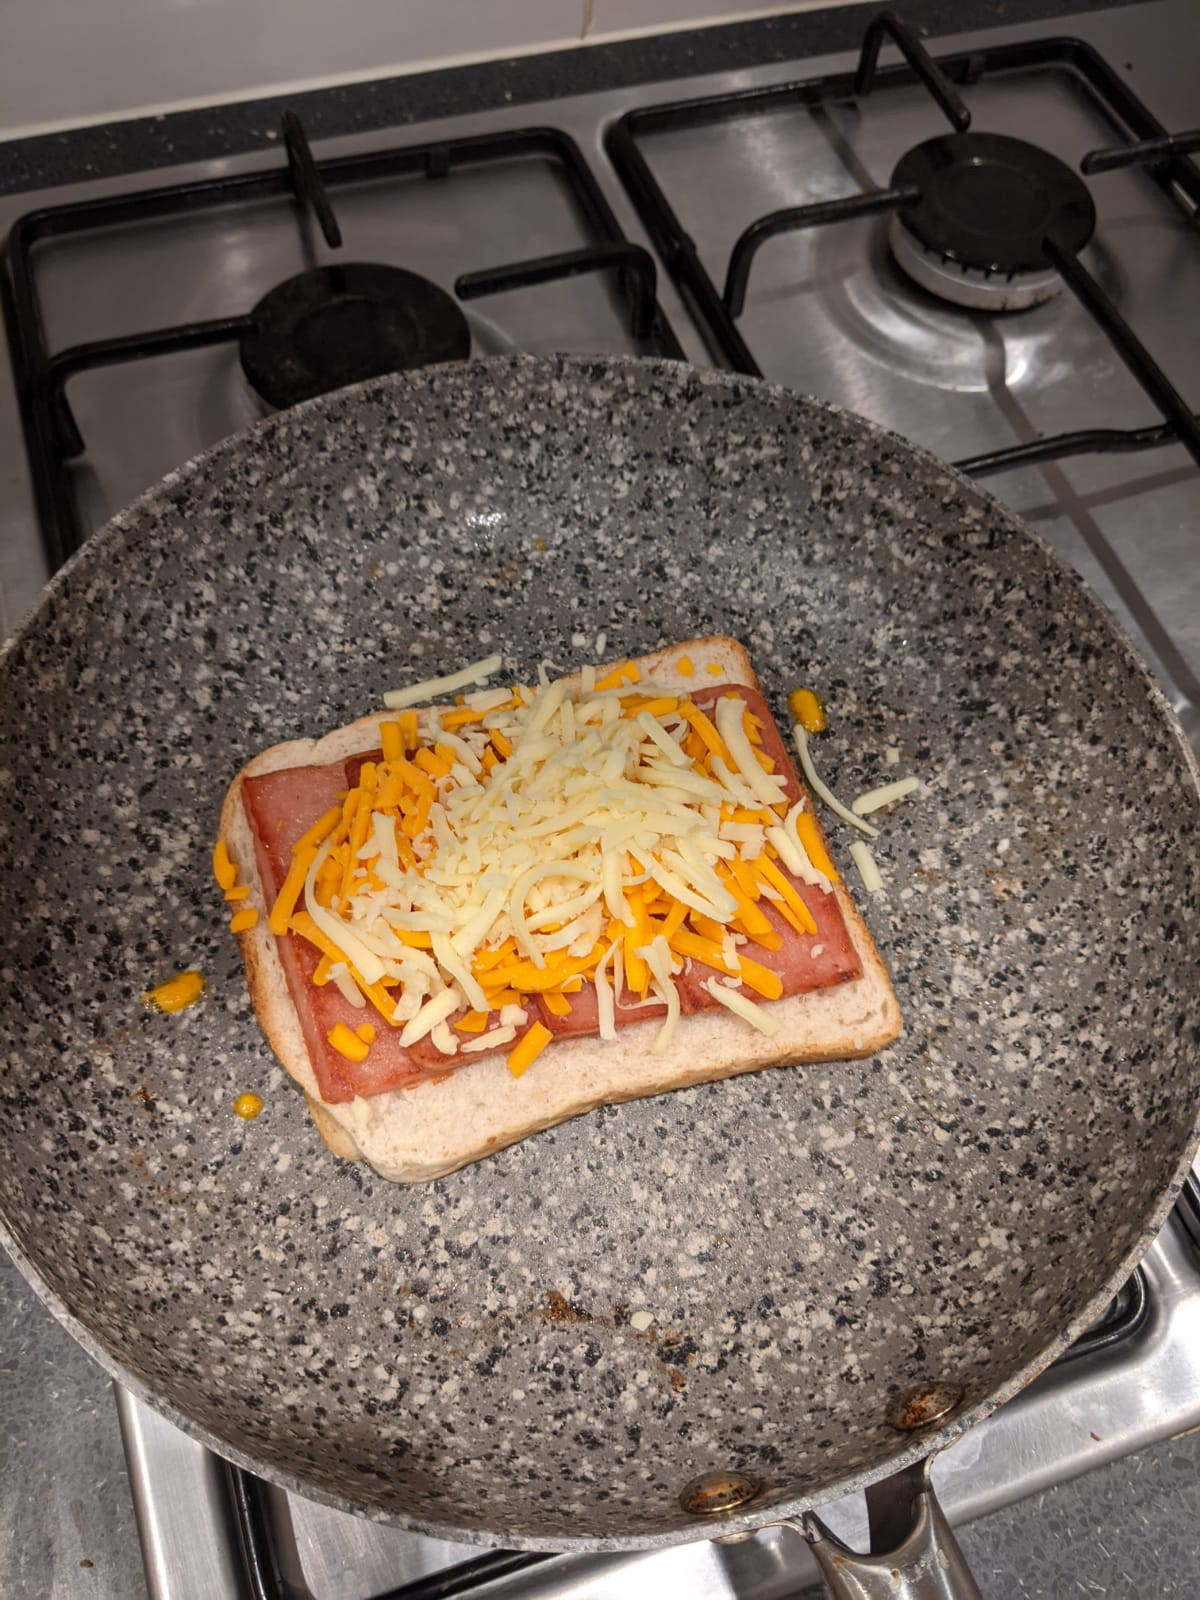 A spam and cheese toastie being cooked in a pan on a hob.